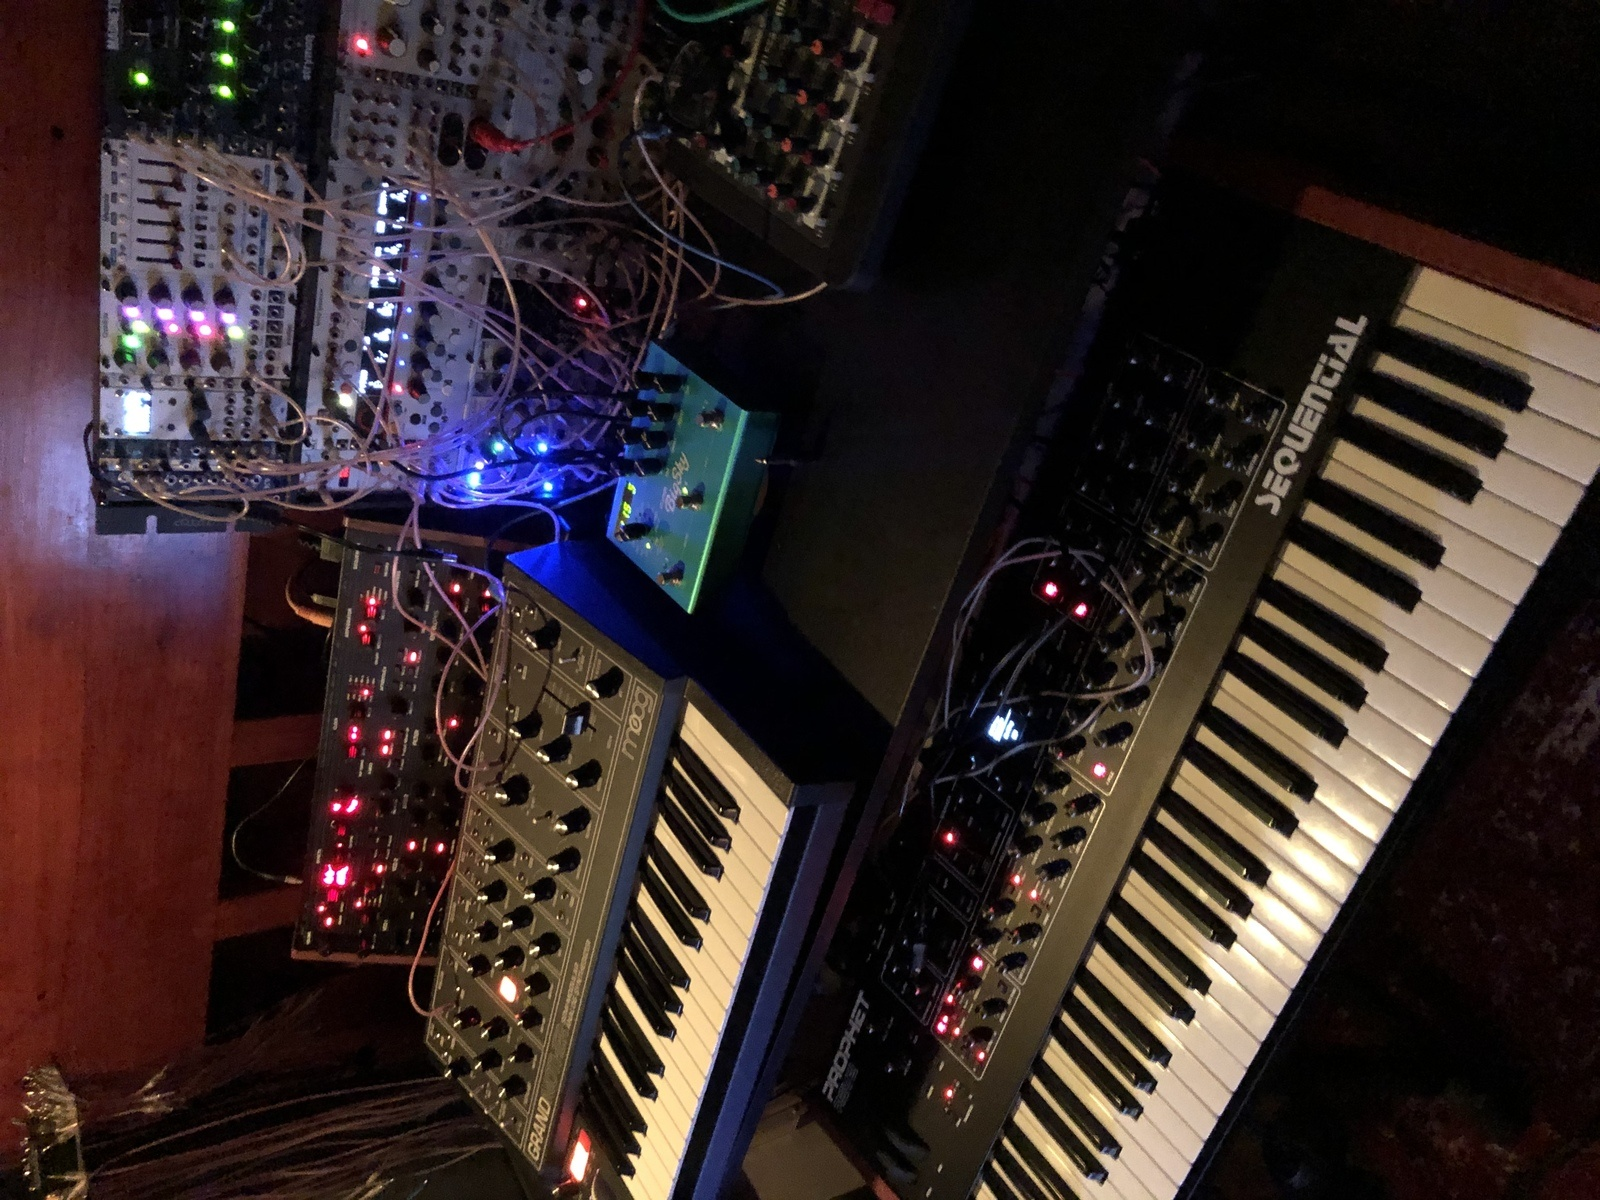 Photo of Dave Smith Instruments Sequential Prophet REV2 and more gear